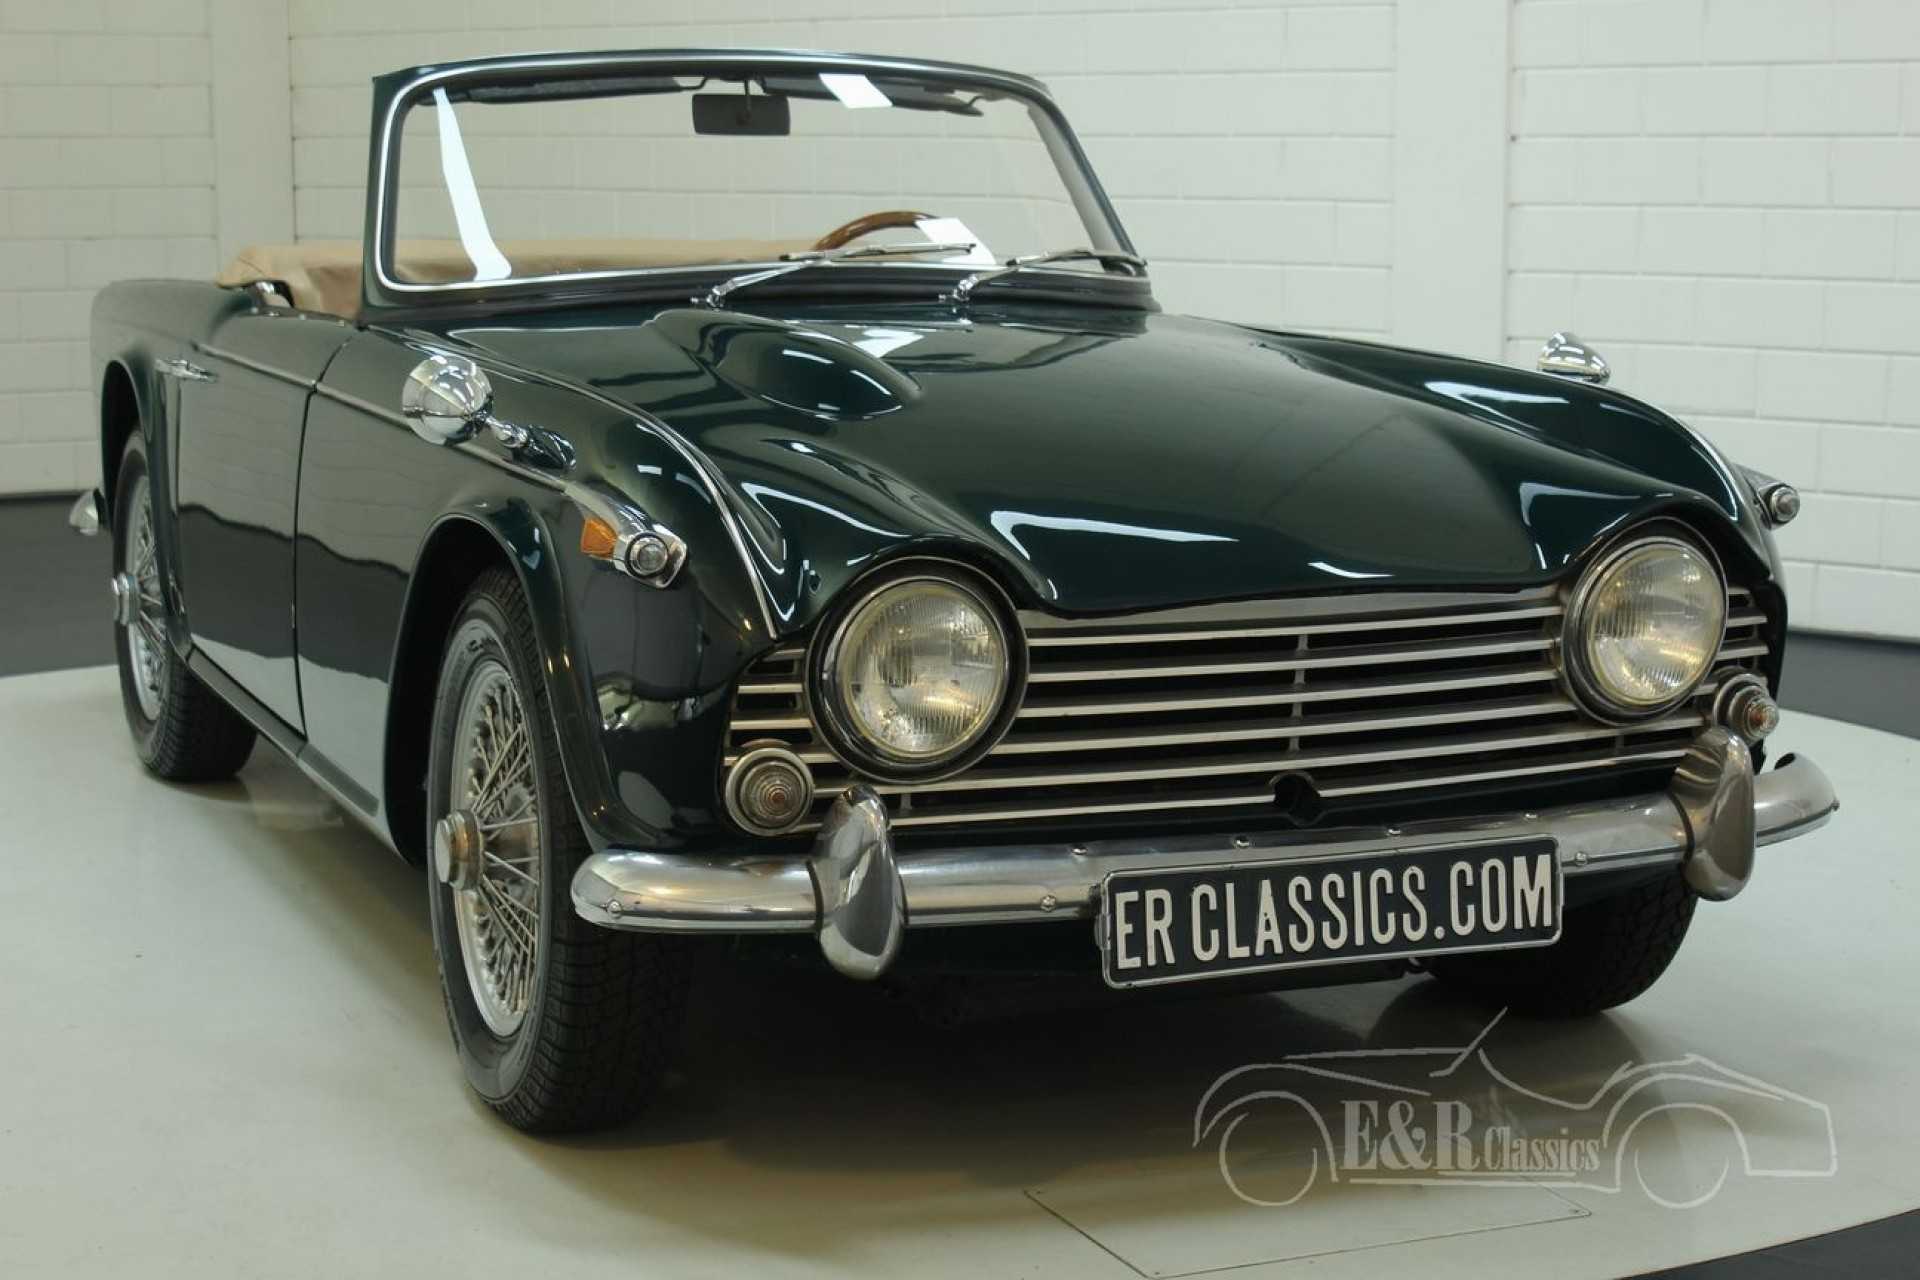 Triumph Tr4 A Irs 1967 For Sale At Erclassics